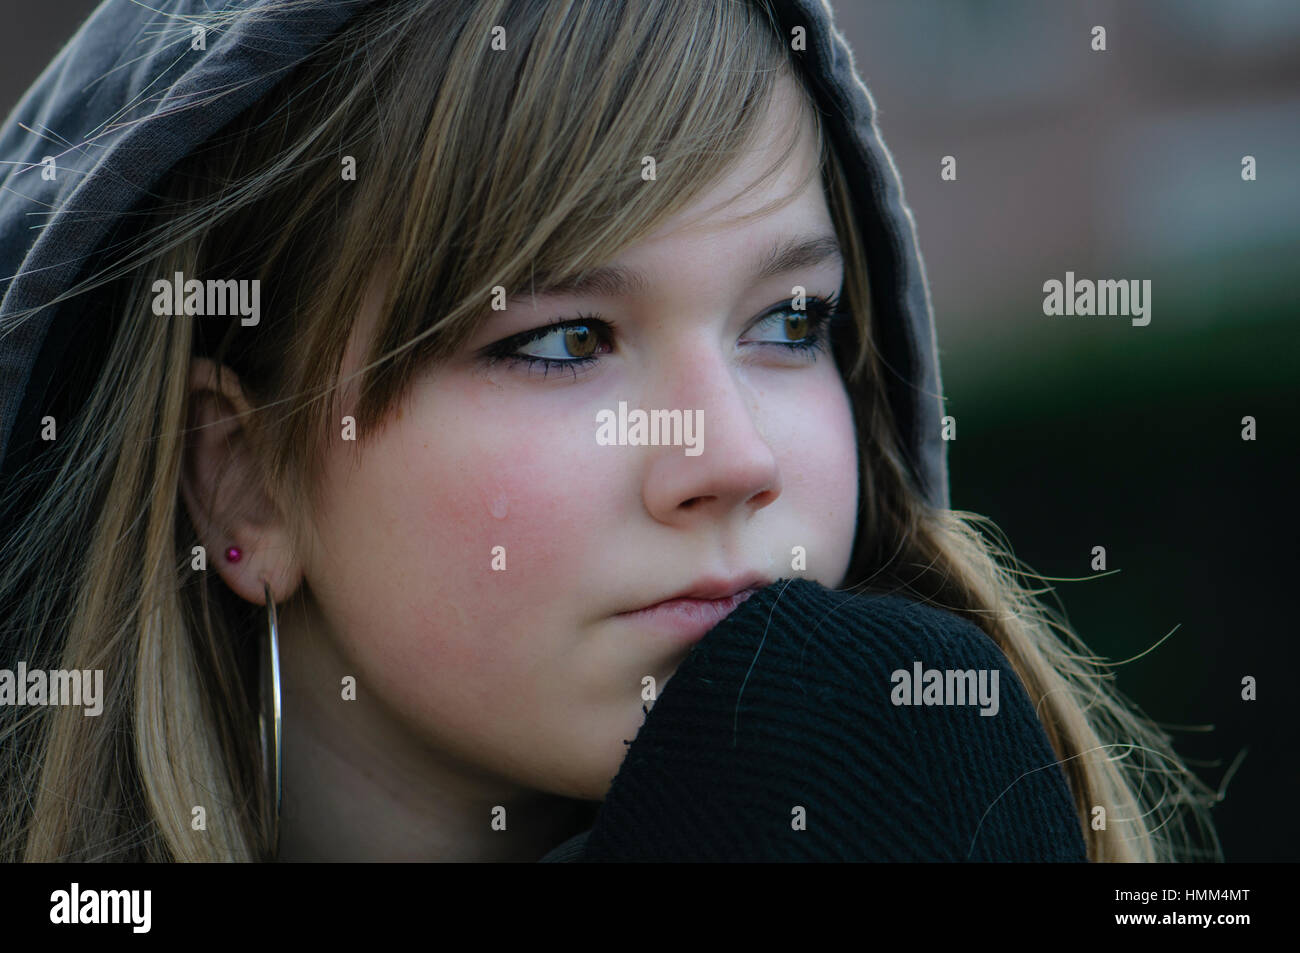 crying girl looks straight ahead and thinking - Stock Image